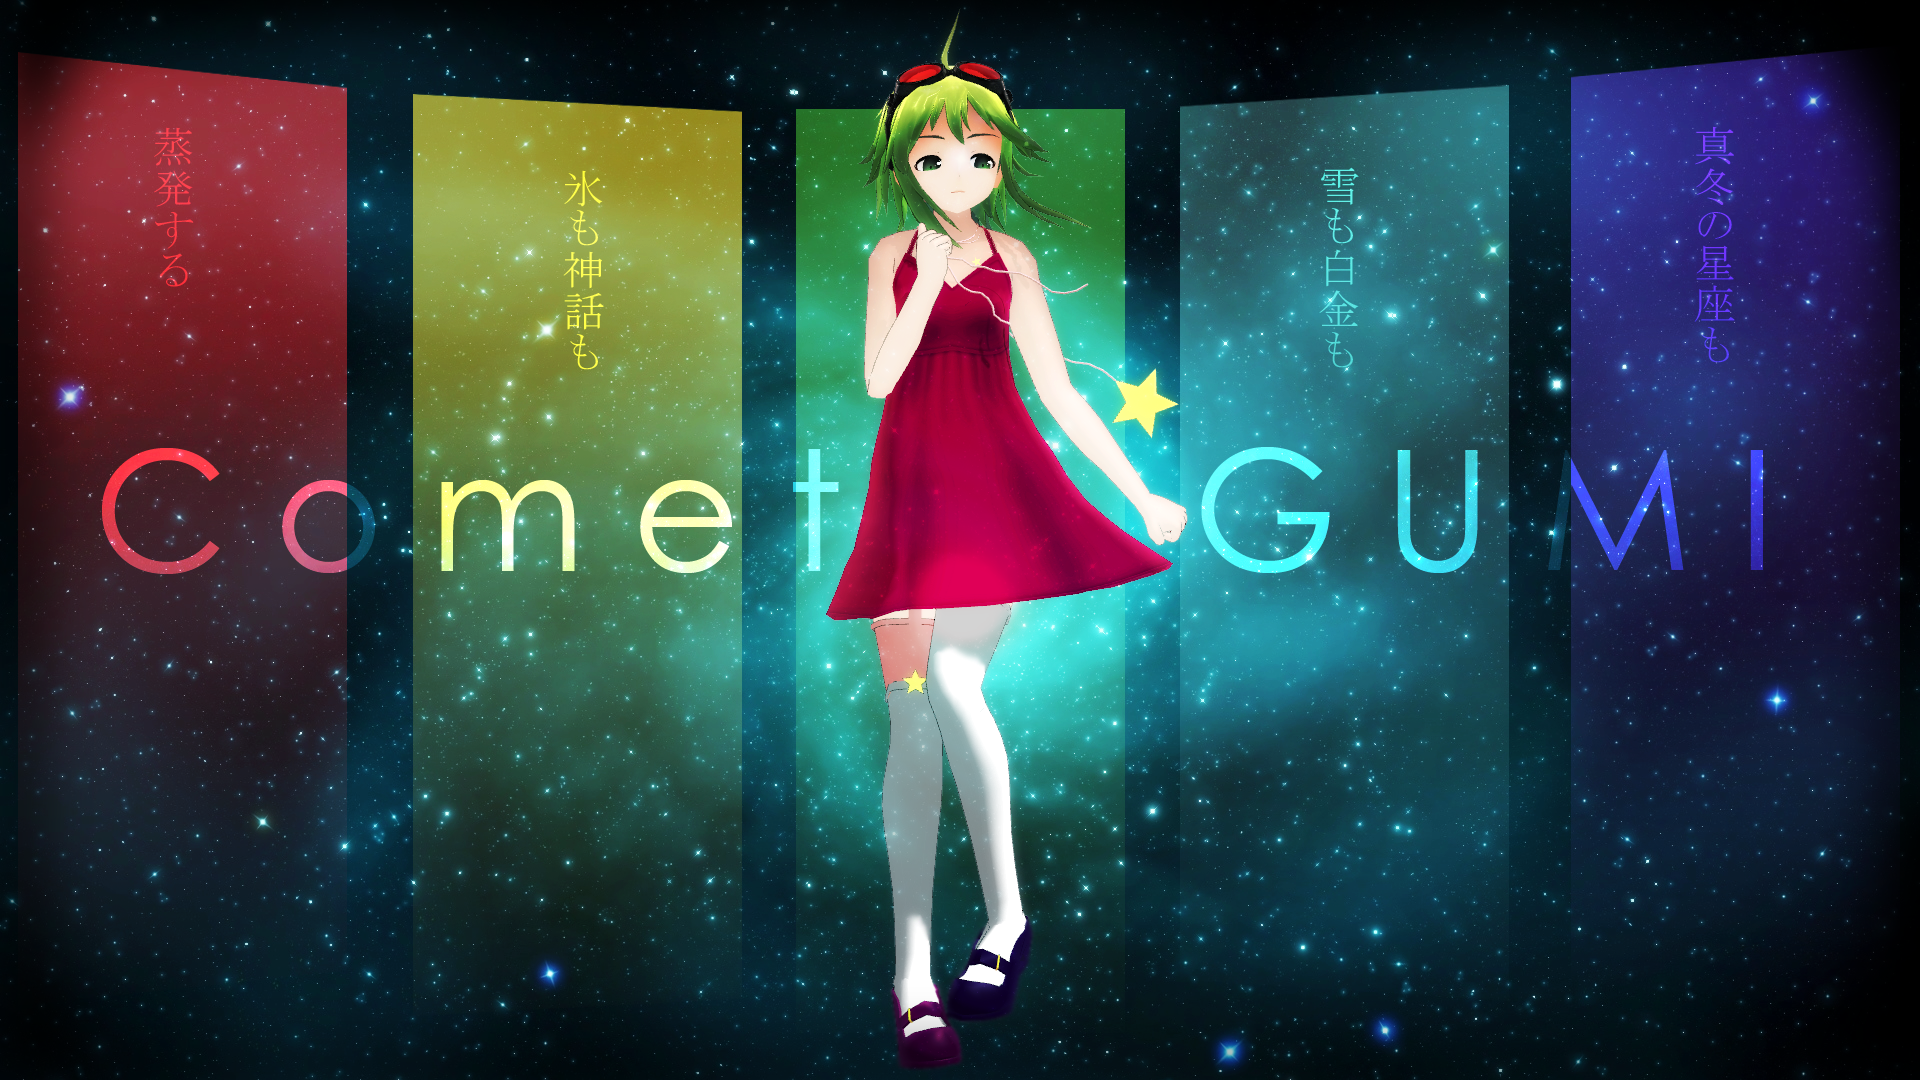 Comet PV GUMI {Outfit + Model DL} by Solhymmne